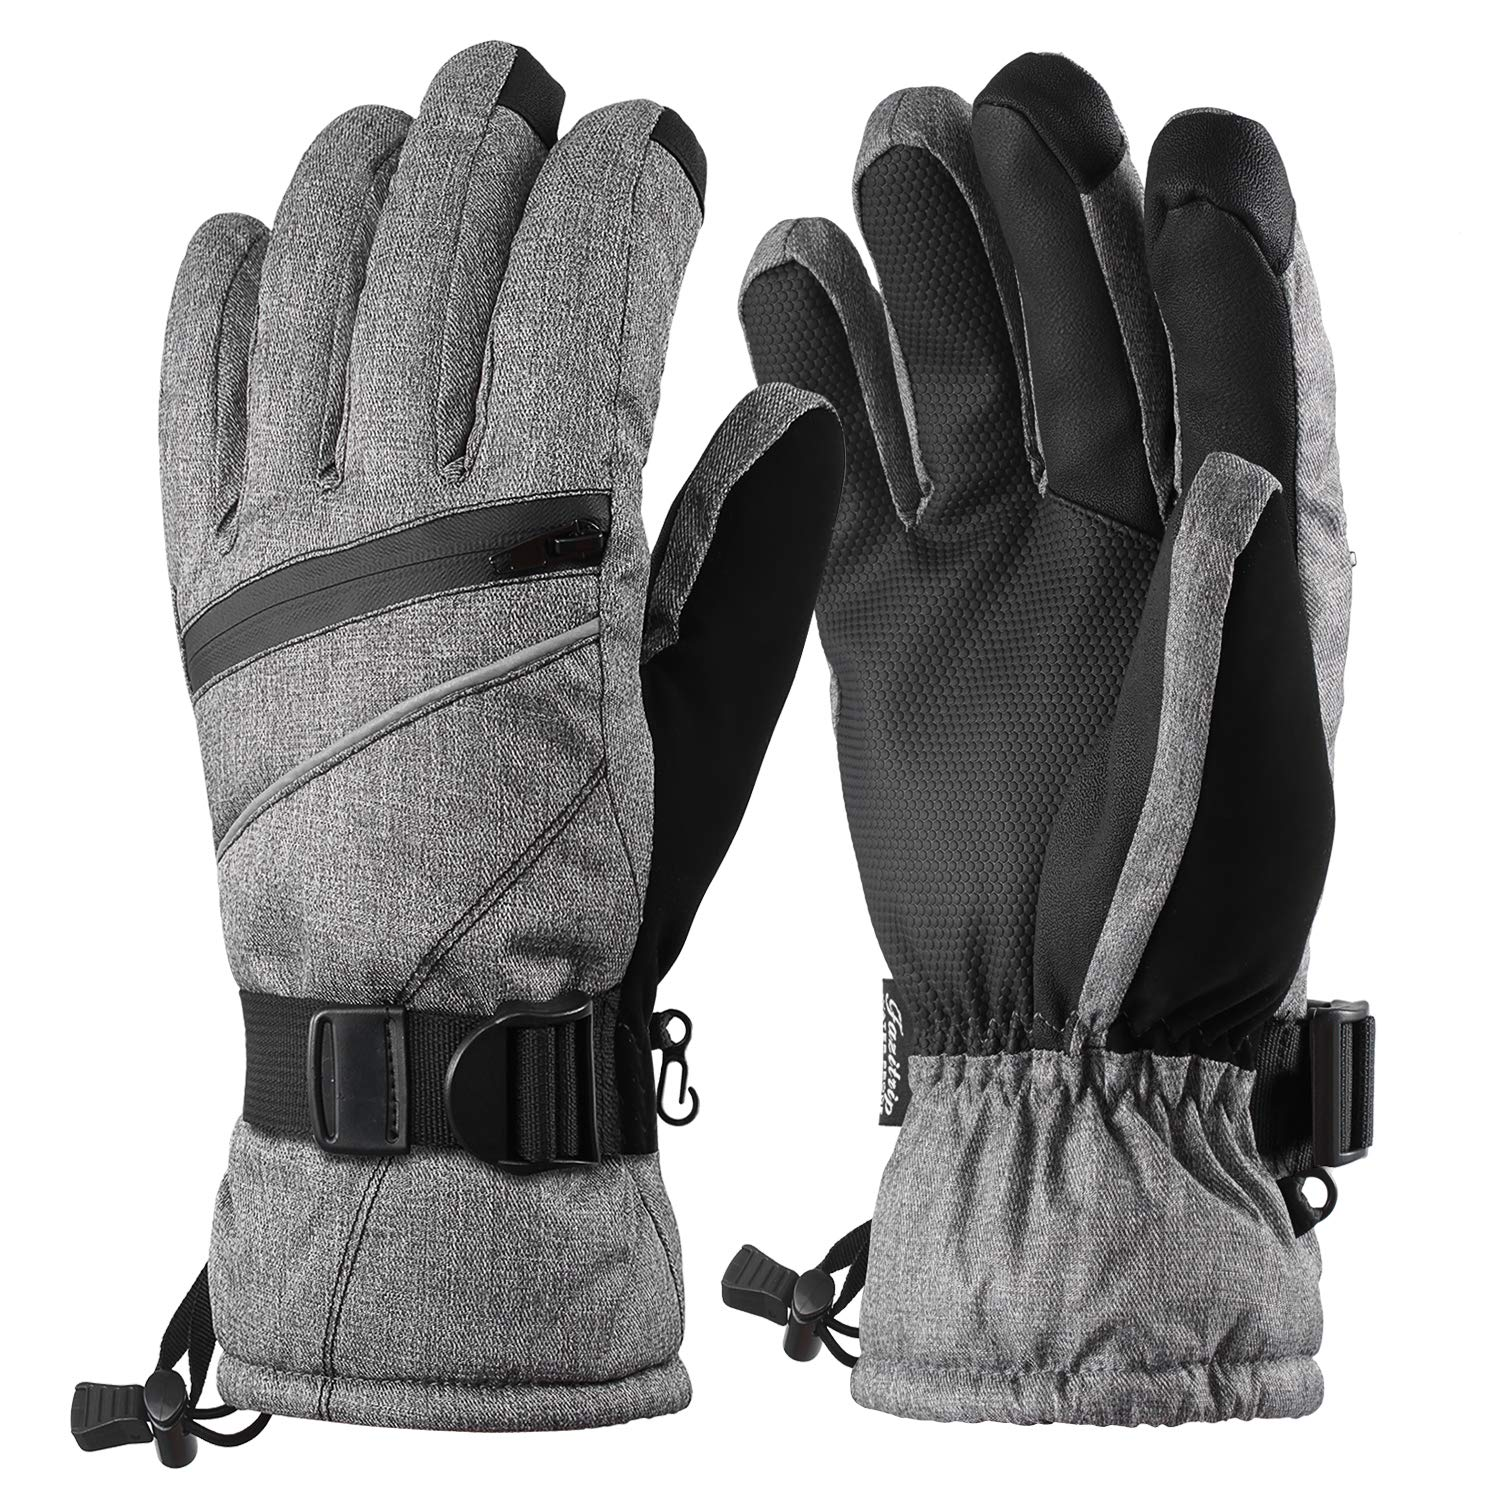 Fazitrip Ski Gloves, Men's 3M Thinsulate Winter Snow Warm Insulated Gloves Windproof Waterproof Gloves for Skiing, Snowboarding and Snowmobile Men' s 3M Thinsulate Winter Snow Warm Insulated Gloves Windproof Waterproof Gloves for Skiing